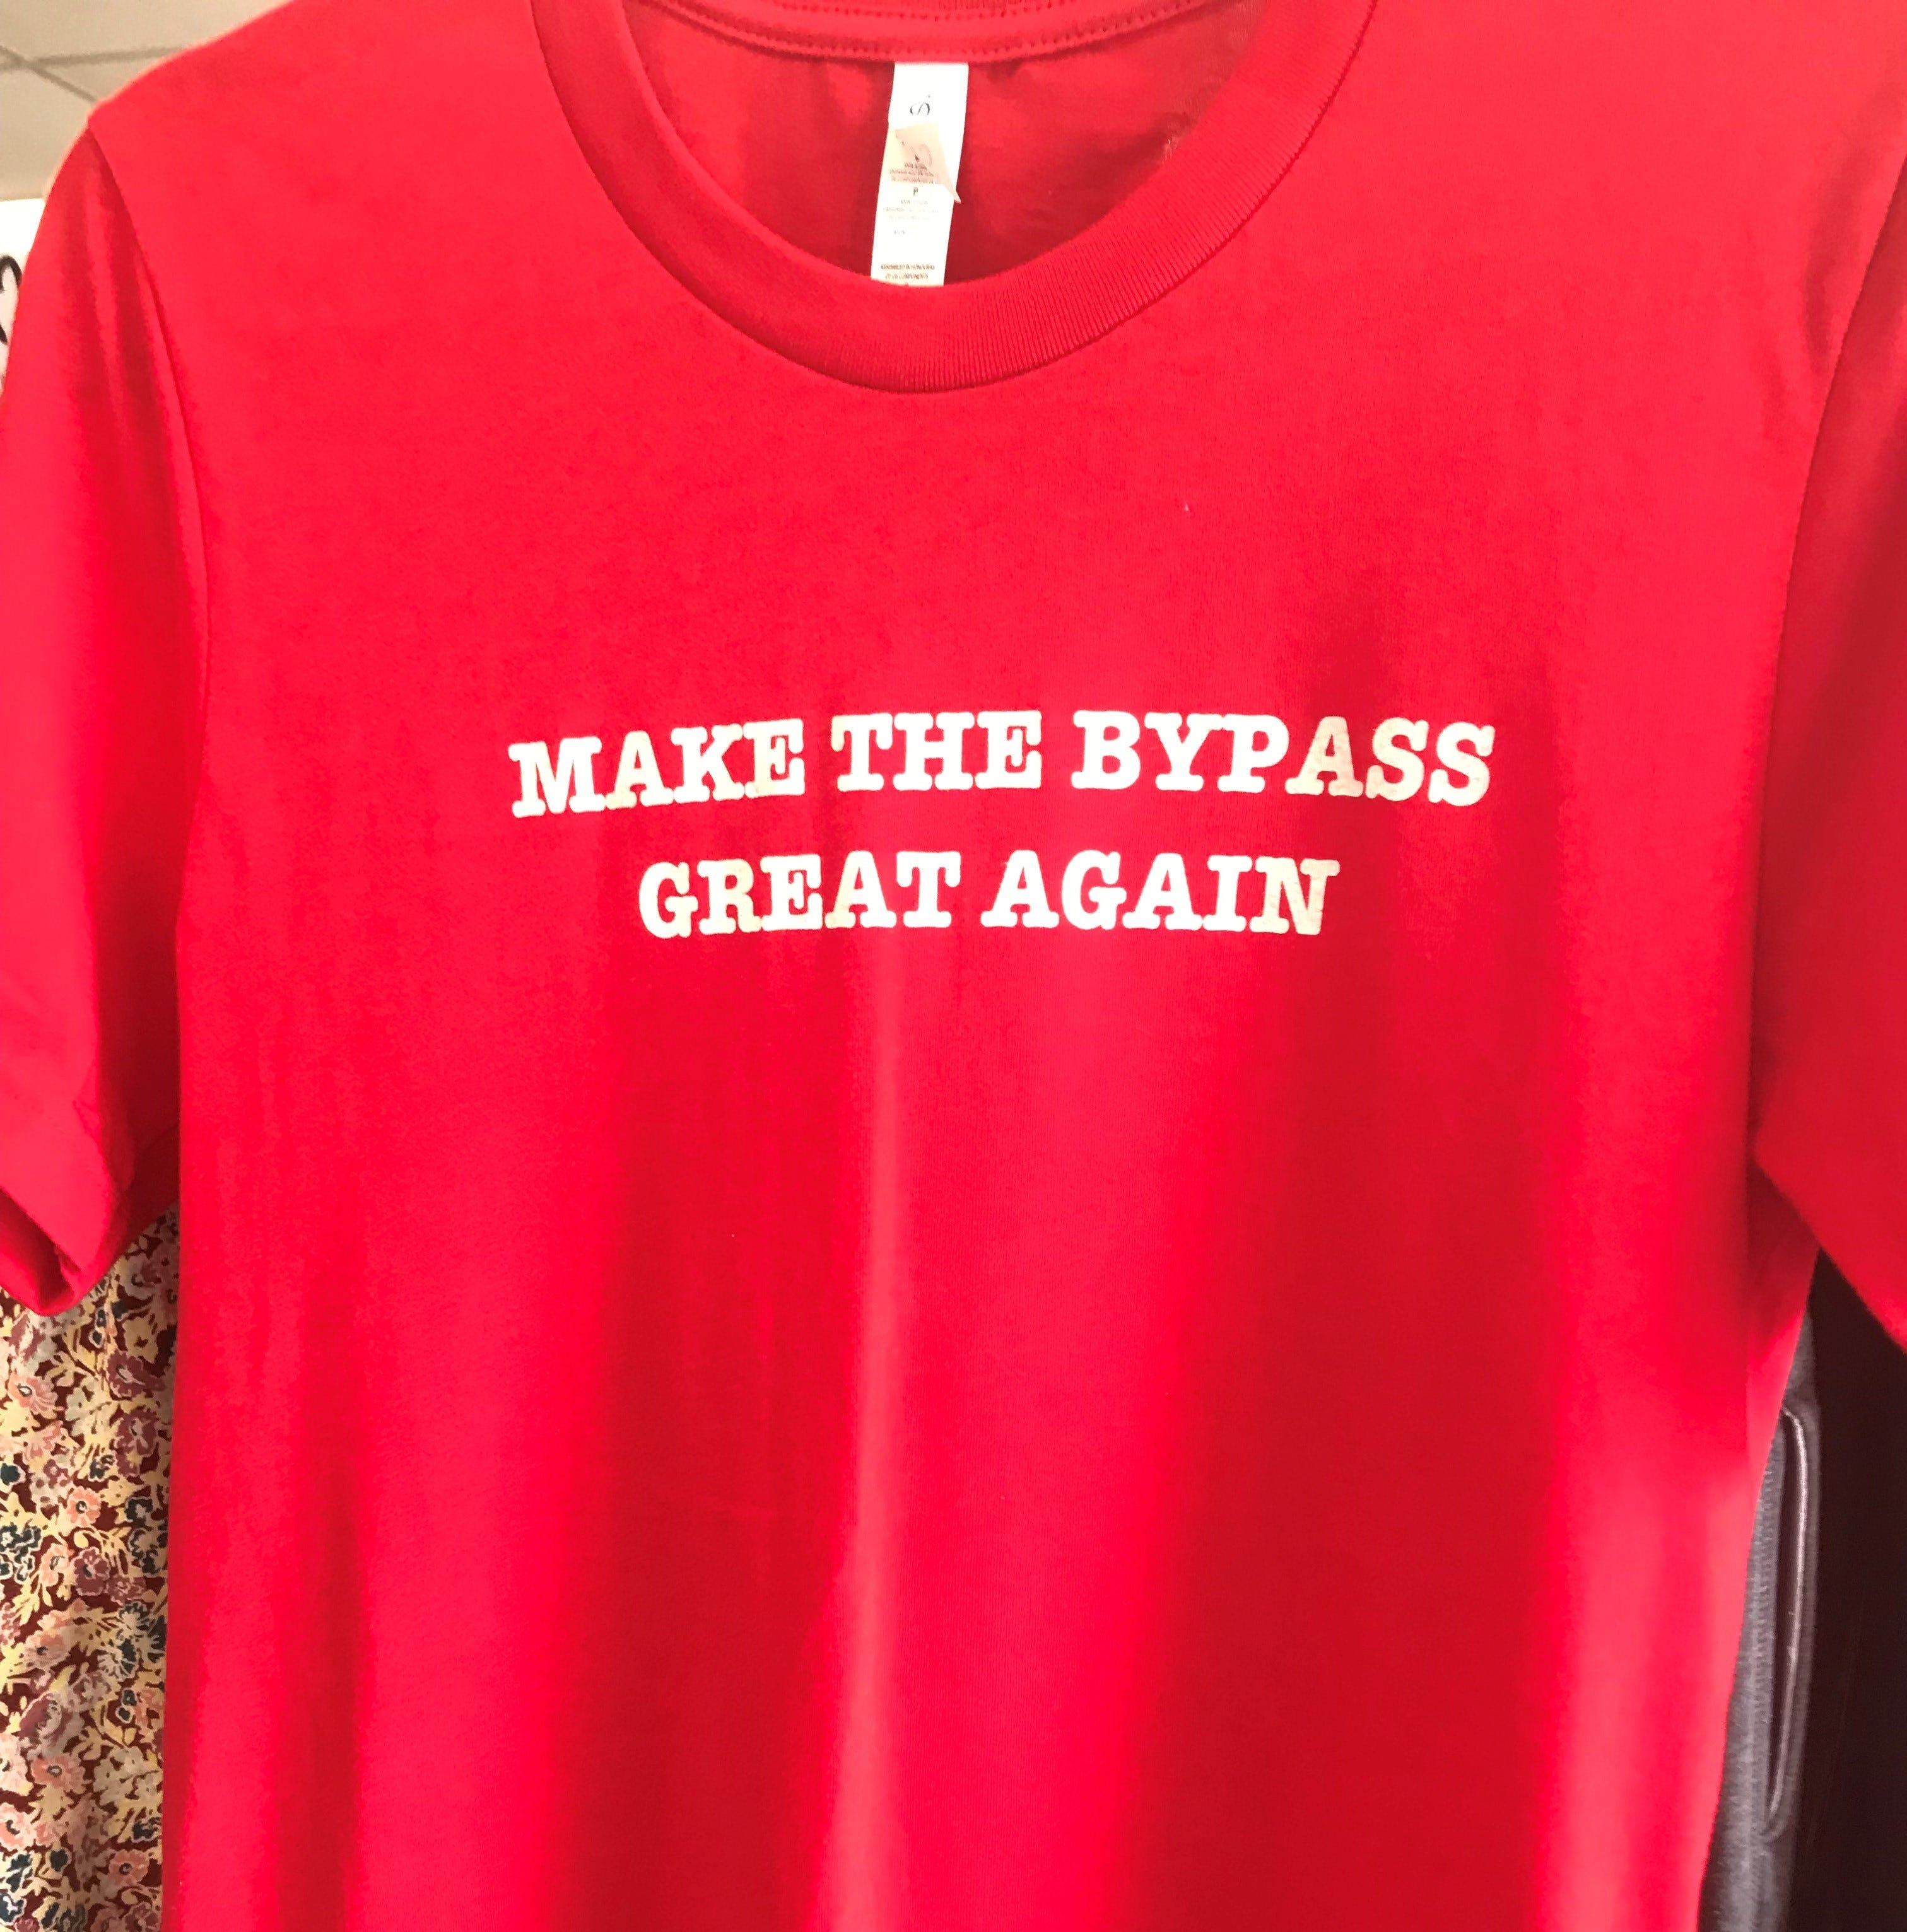 Local business selling 'Make The Bypass Great Again' shirts